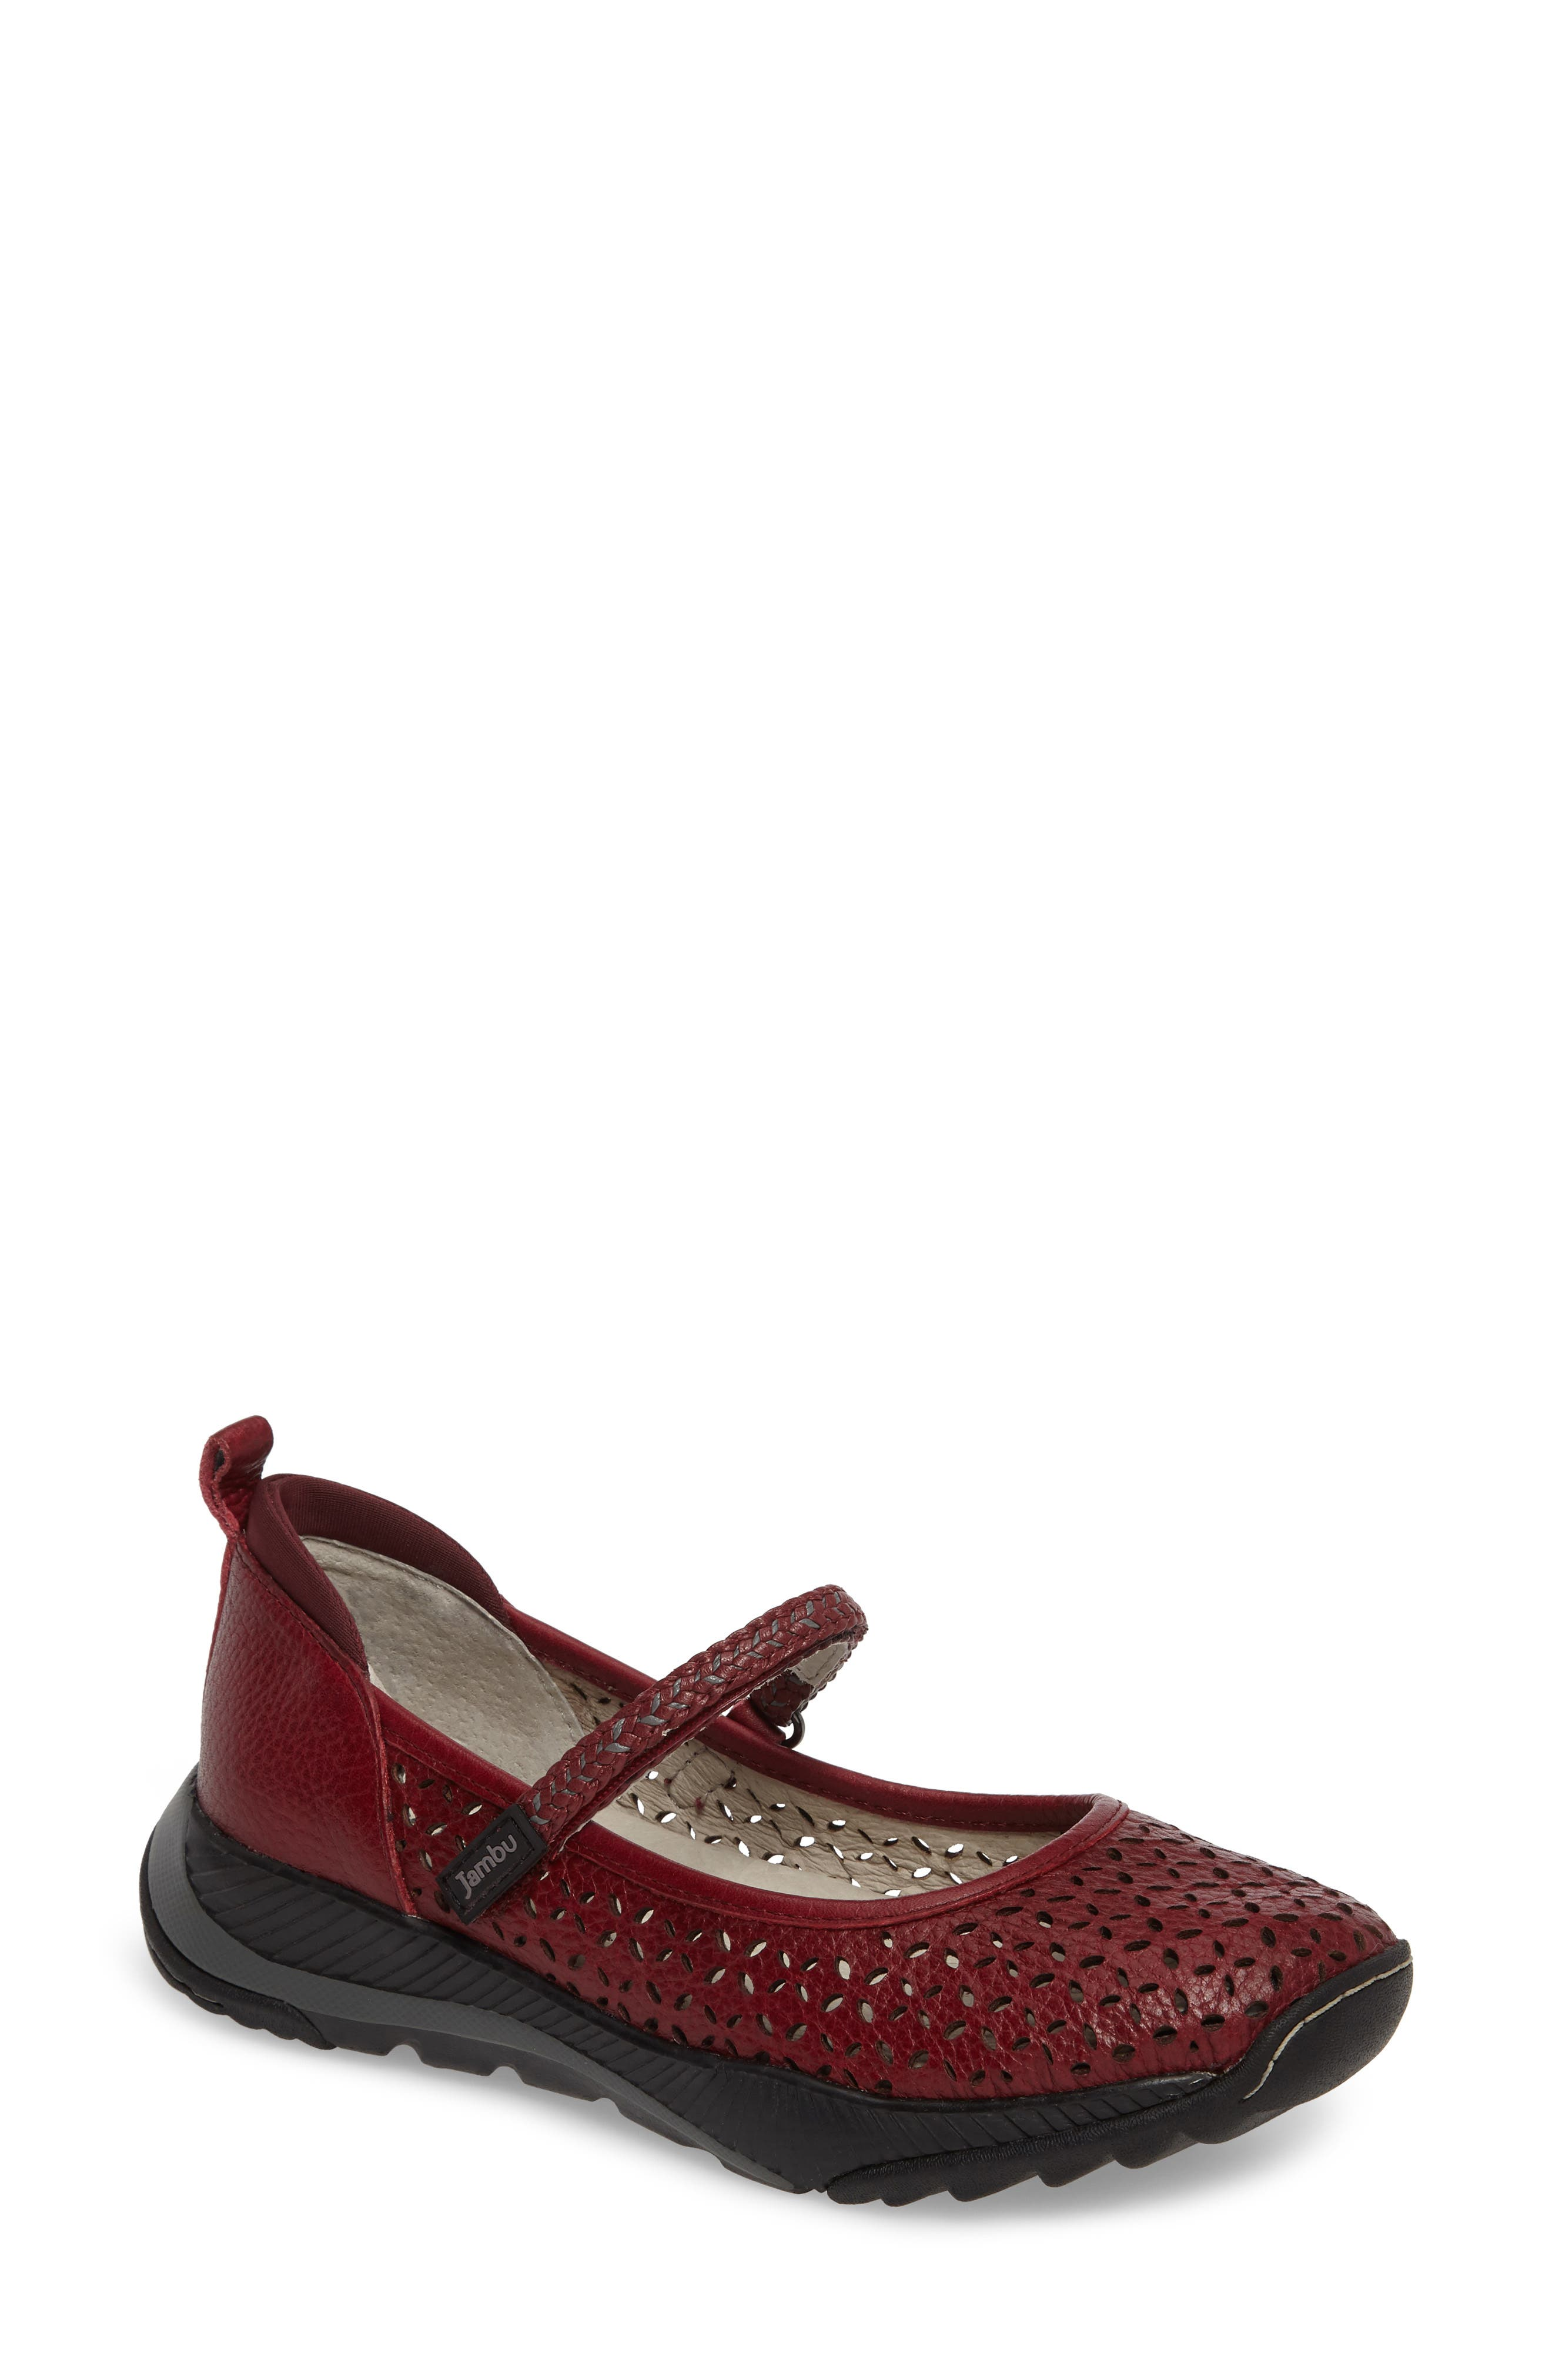 JAMBU Bailey Perforated Mary Jane Sneaker